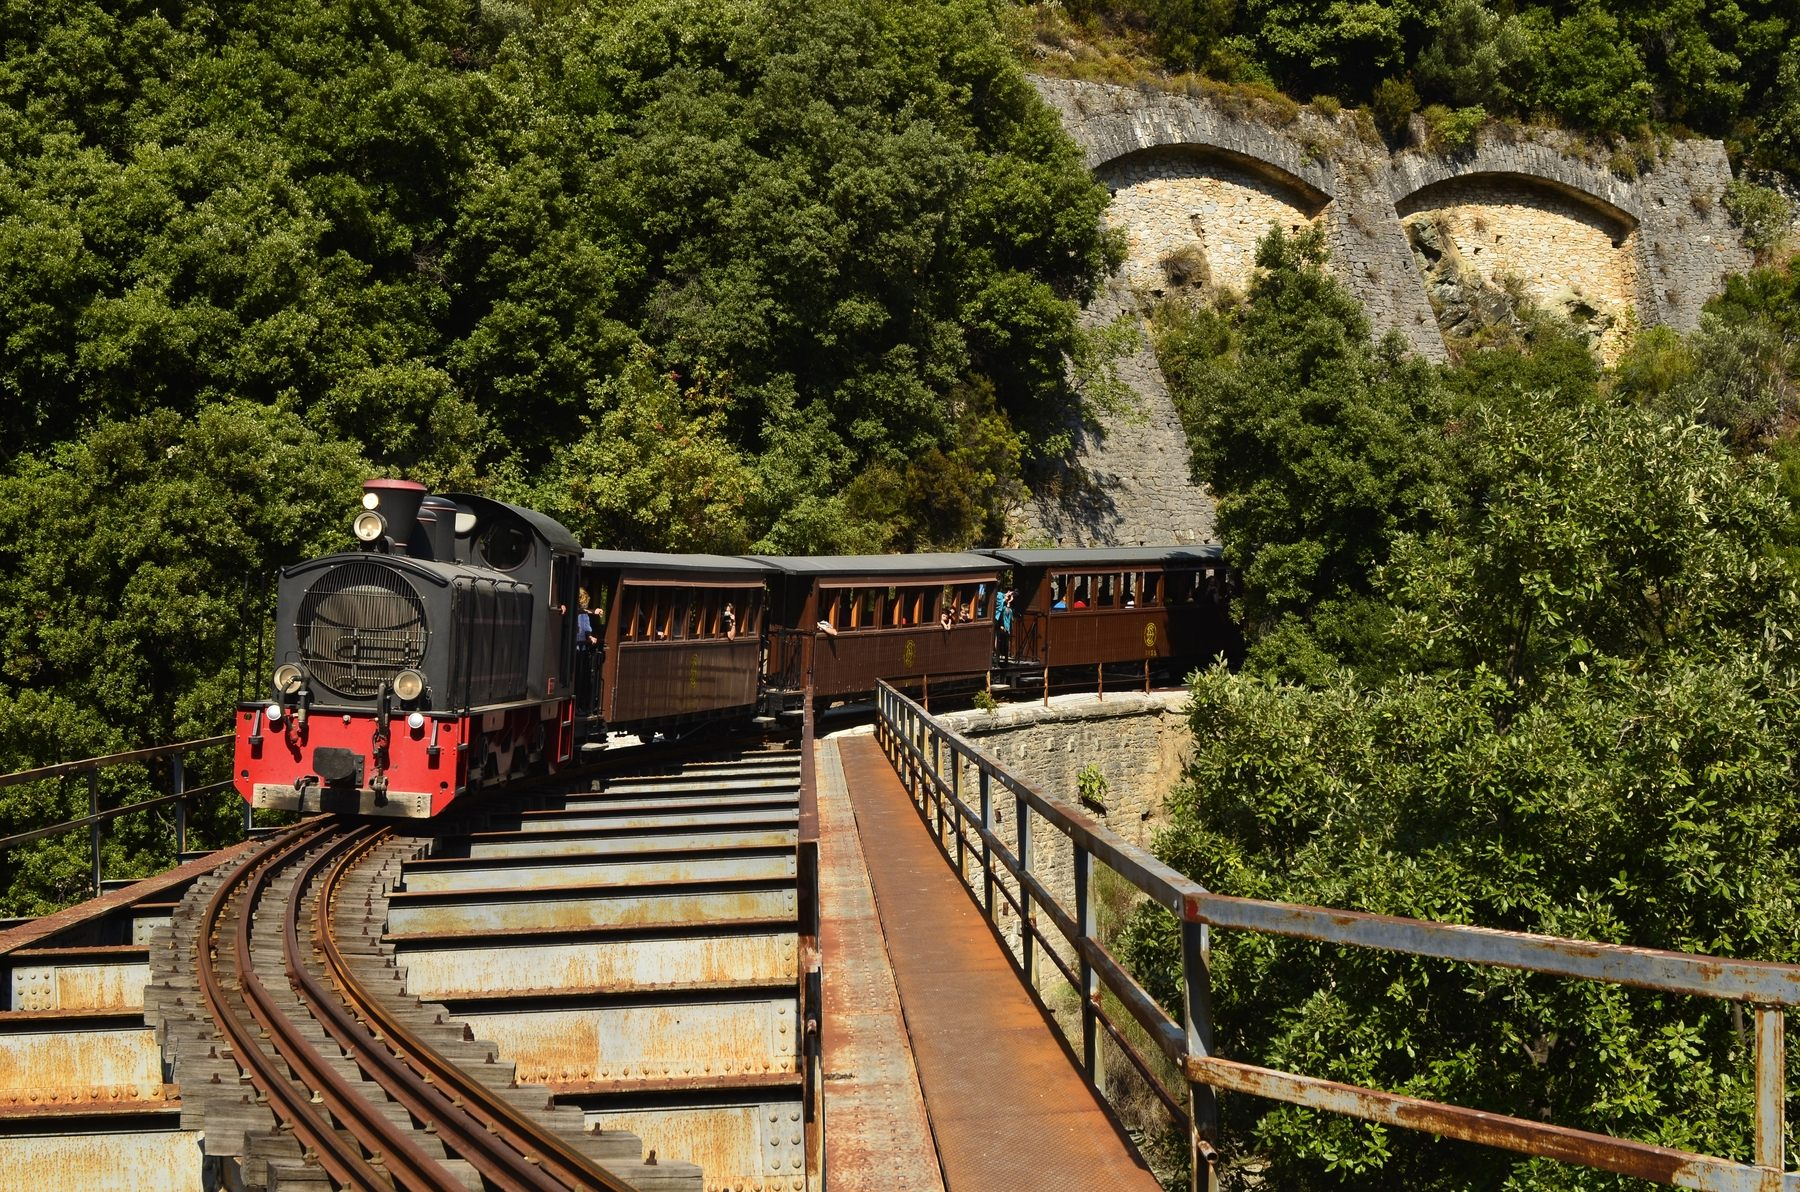 shutterstock_86659753_Montzouris-Smudgy-train-also-named-Pelion-train.jpg